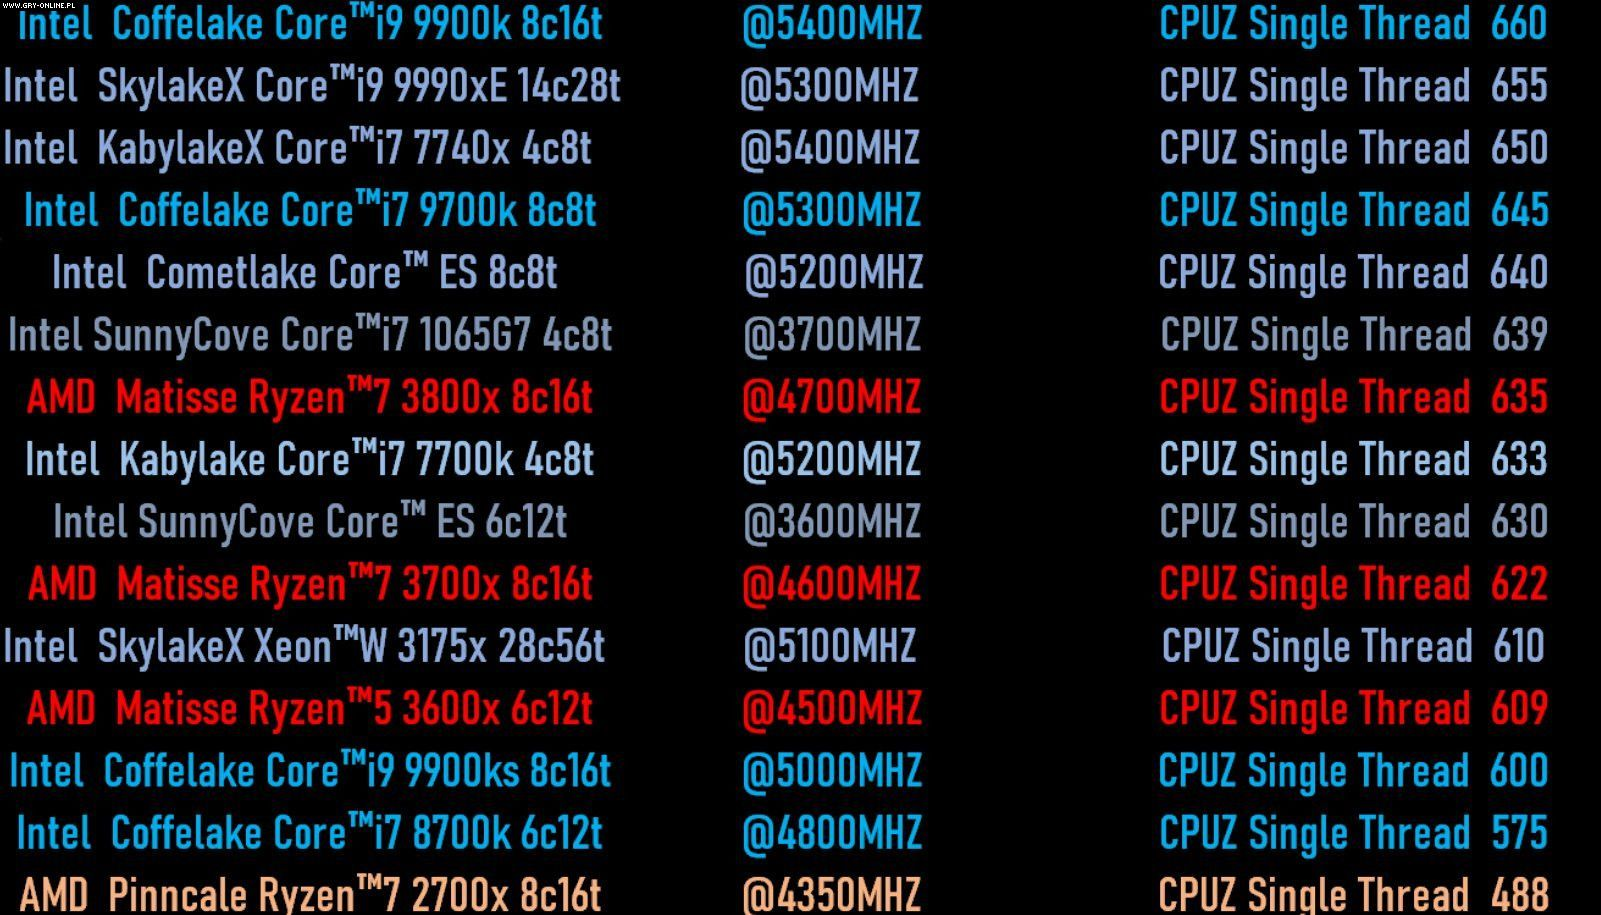 Intel Ice Lake and AMD Ryzen 3000 CPUs in CPU-Z benchmark